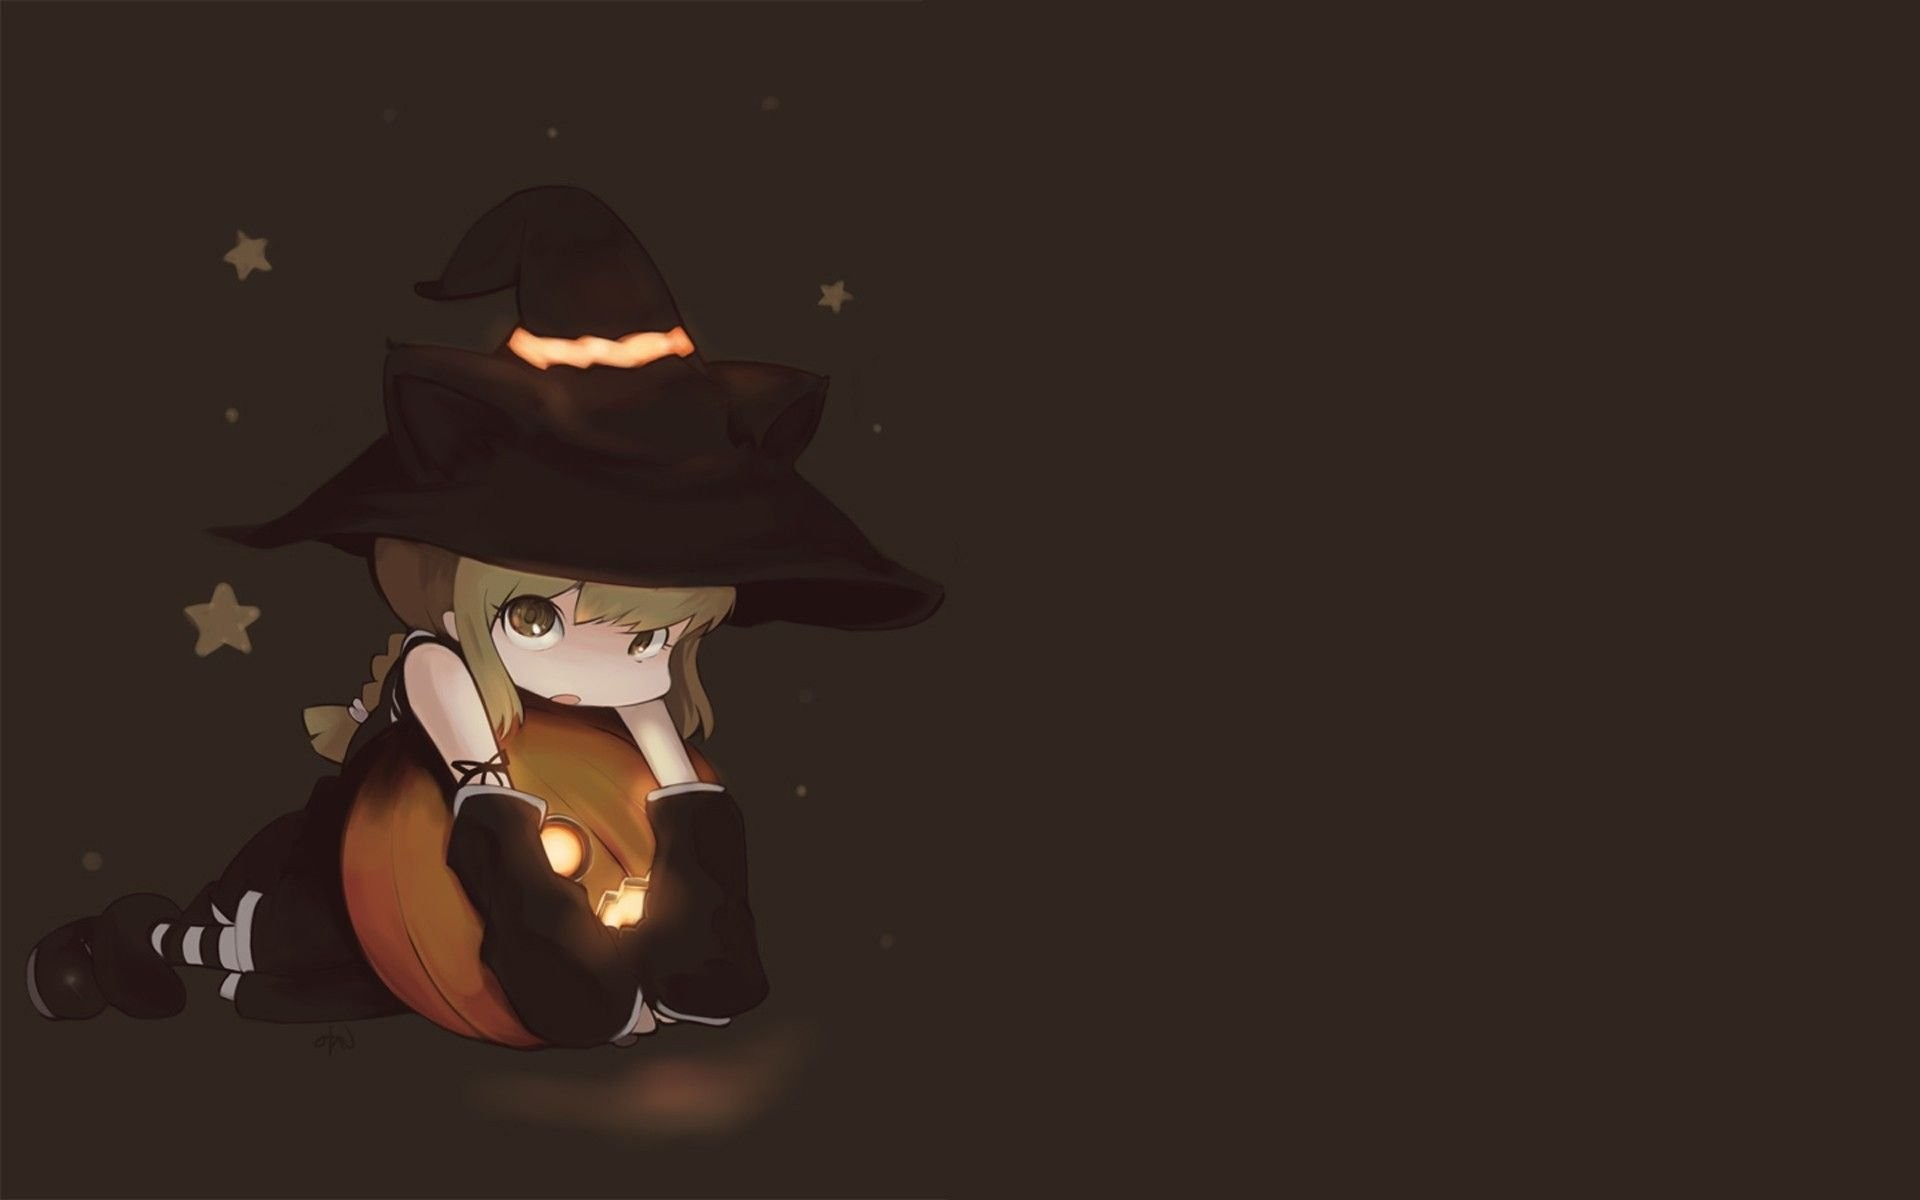 Halloween Pumpkins Witch Hat Samsung Wallpapers Paintings Cosas rh